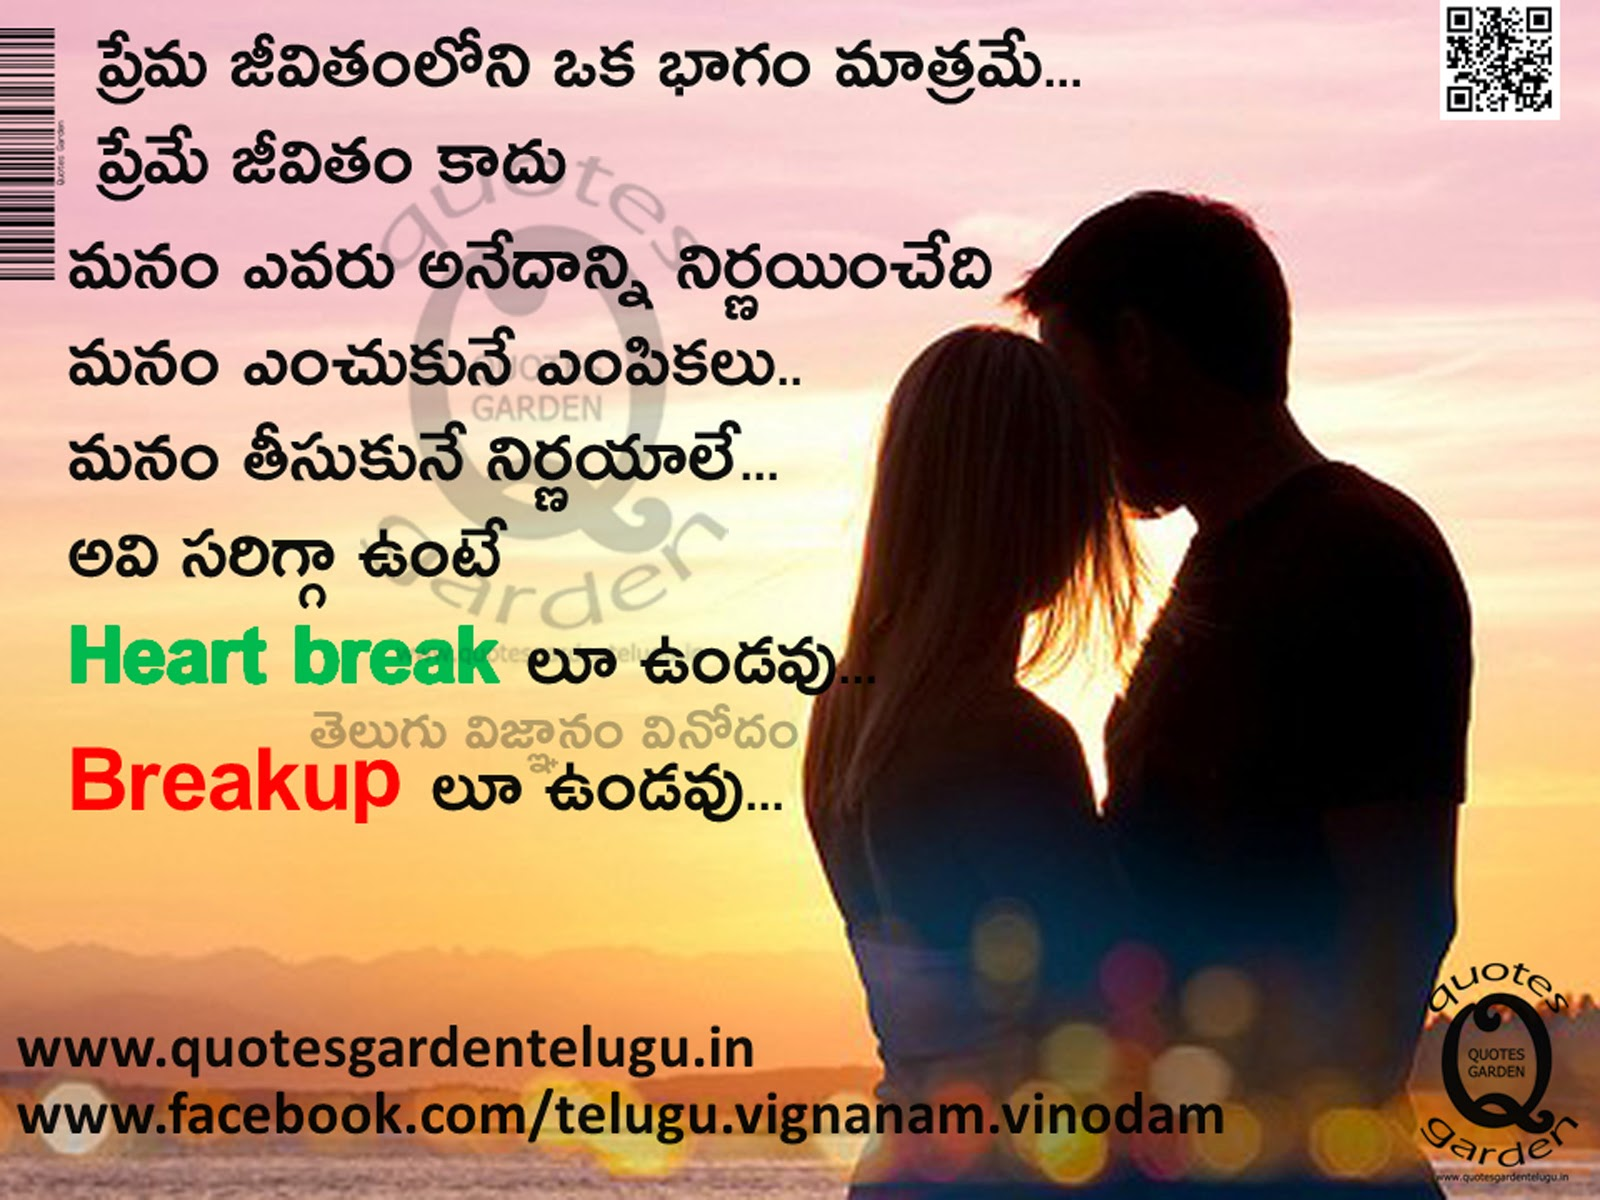 Telugu Love Quotes Fascinating Telugu Love And Inspirational Quotes  Quotes Garden Telugu